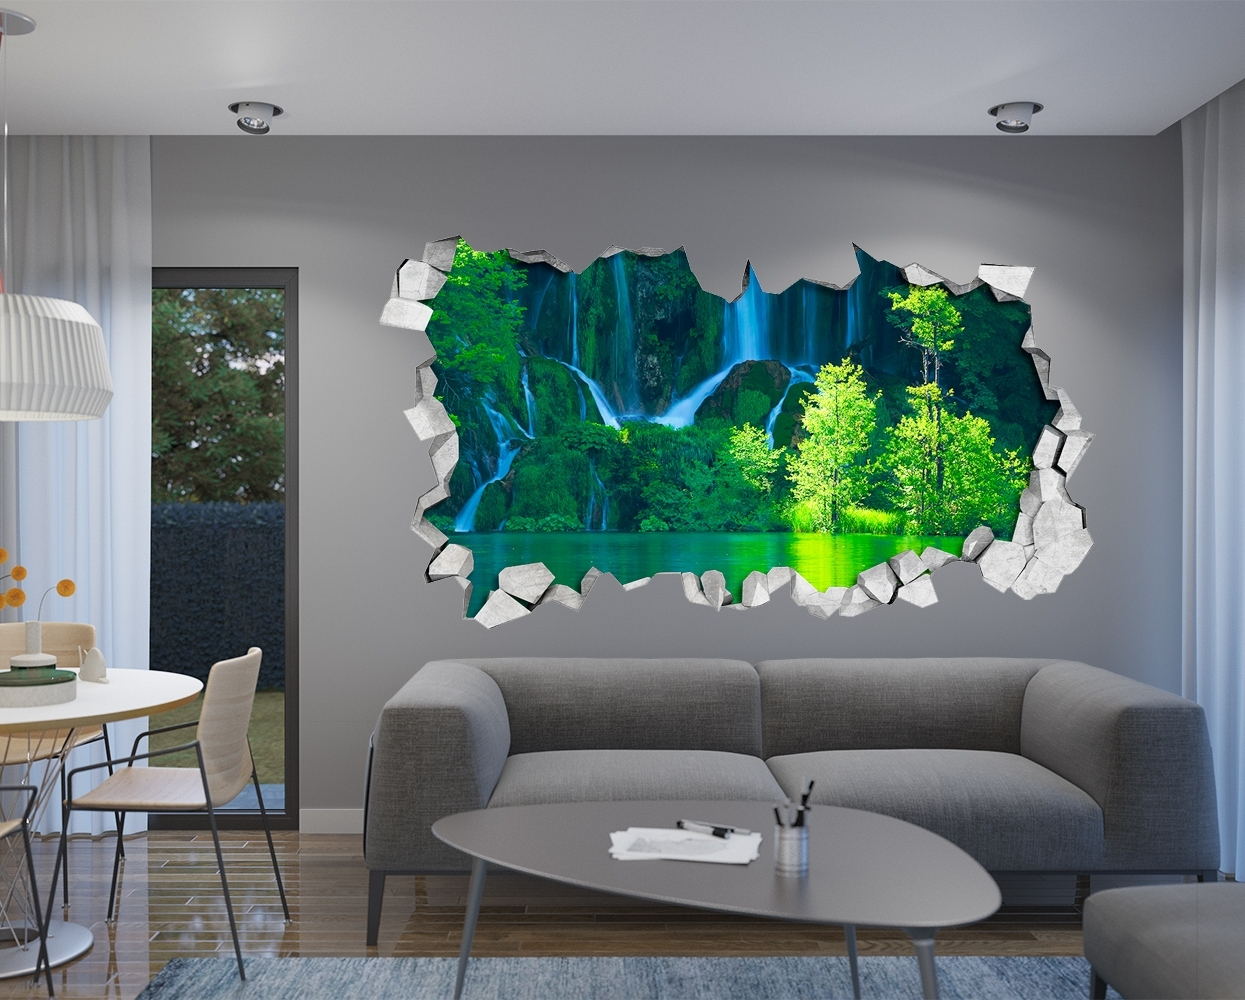 Waterfall – Wall Decal – 3D Wallpaper – 3D Wall Decals – 3D Printed Pertaining To Fashionable 3D Wall Art (View 6 of 15)